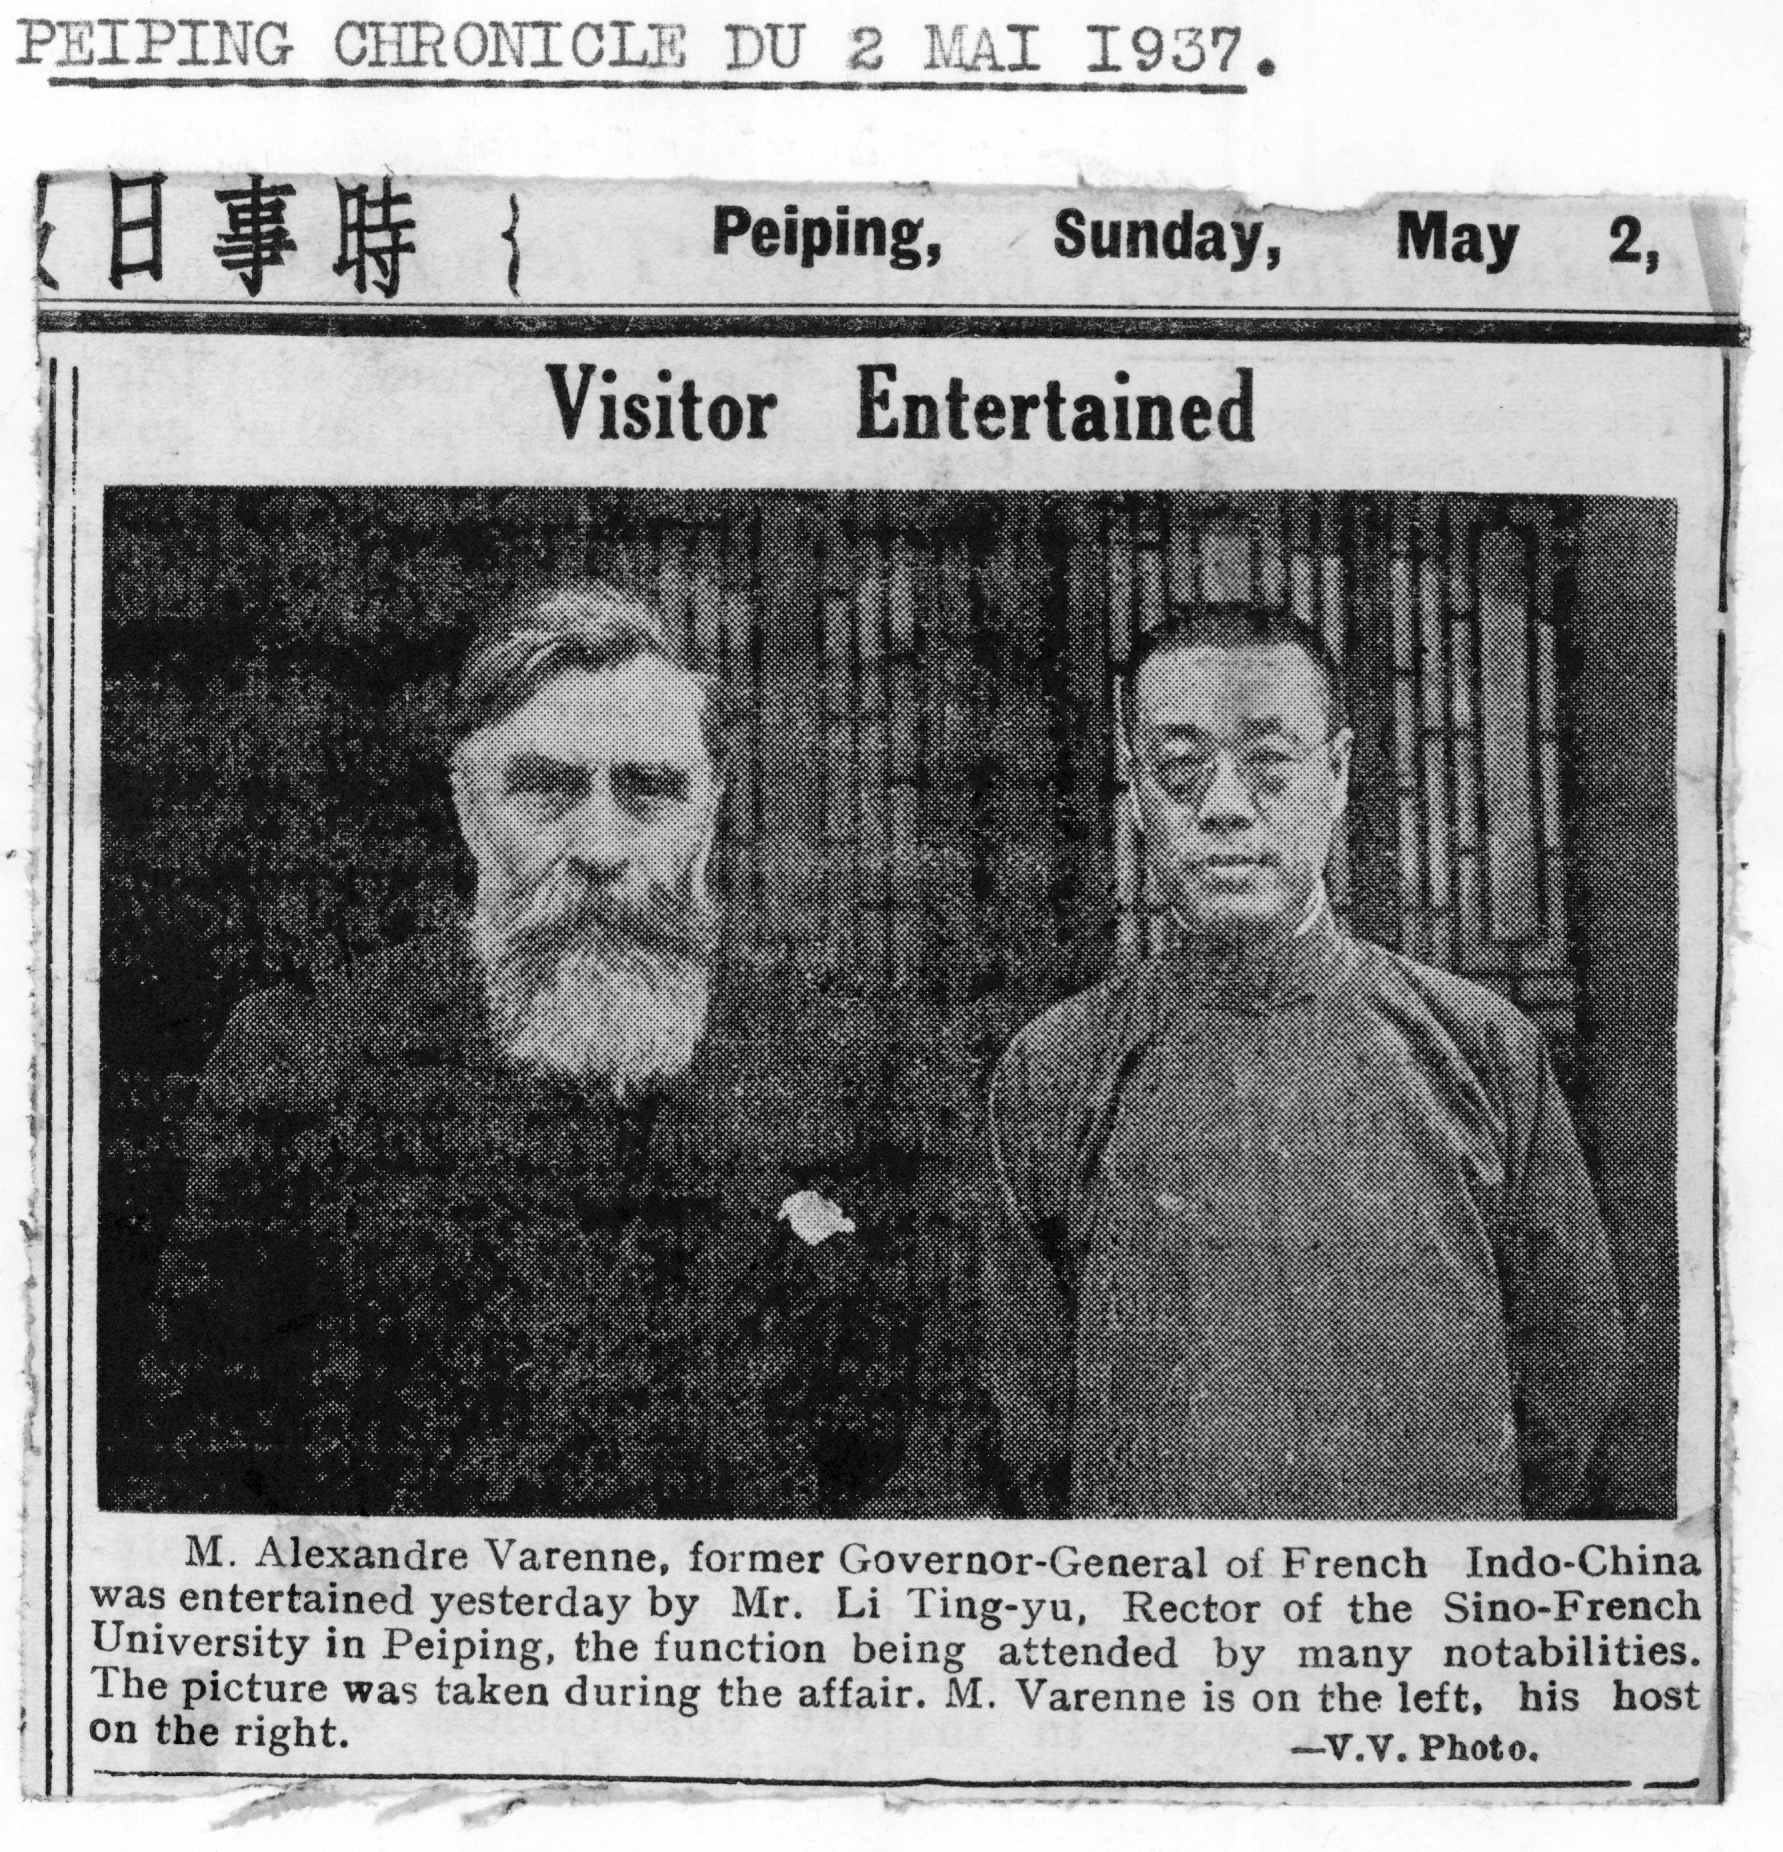 Peiping Chronicle, du 02 Mai 1937